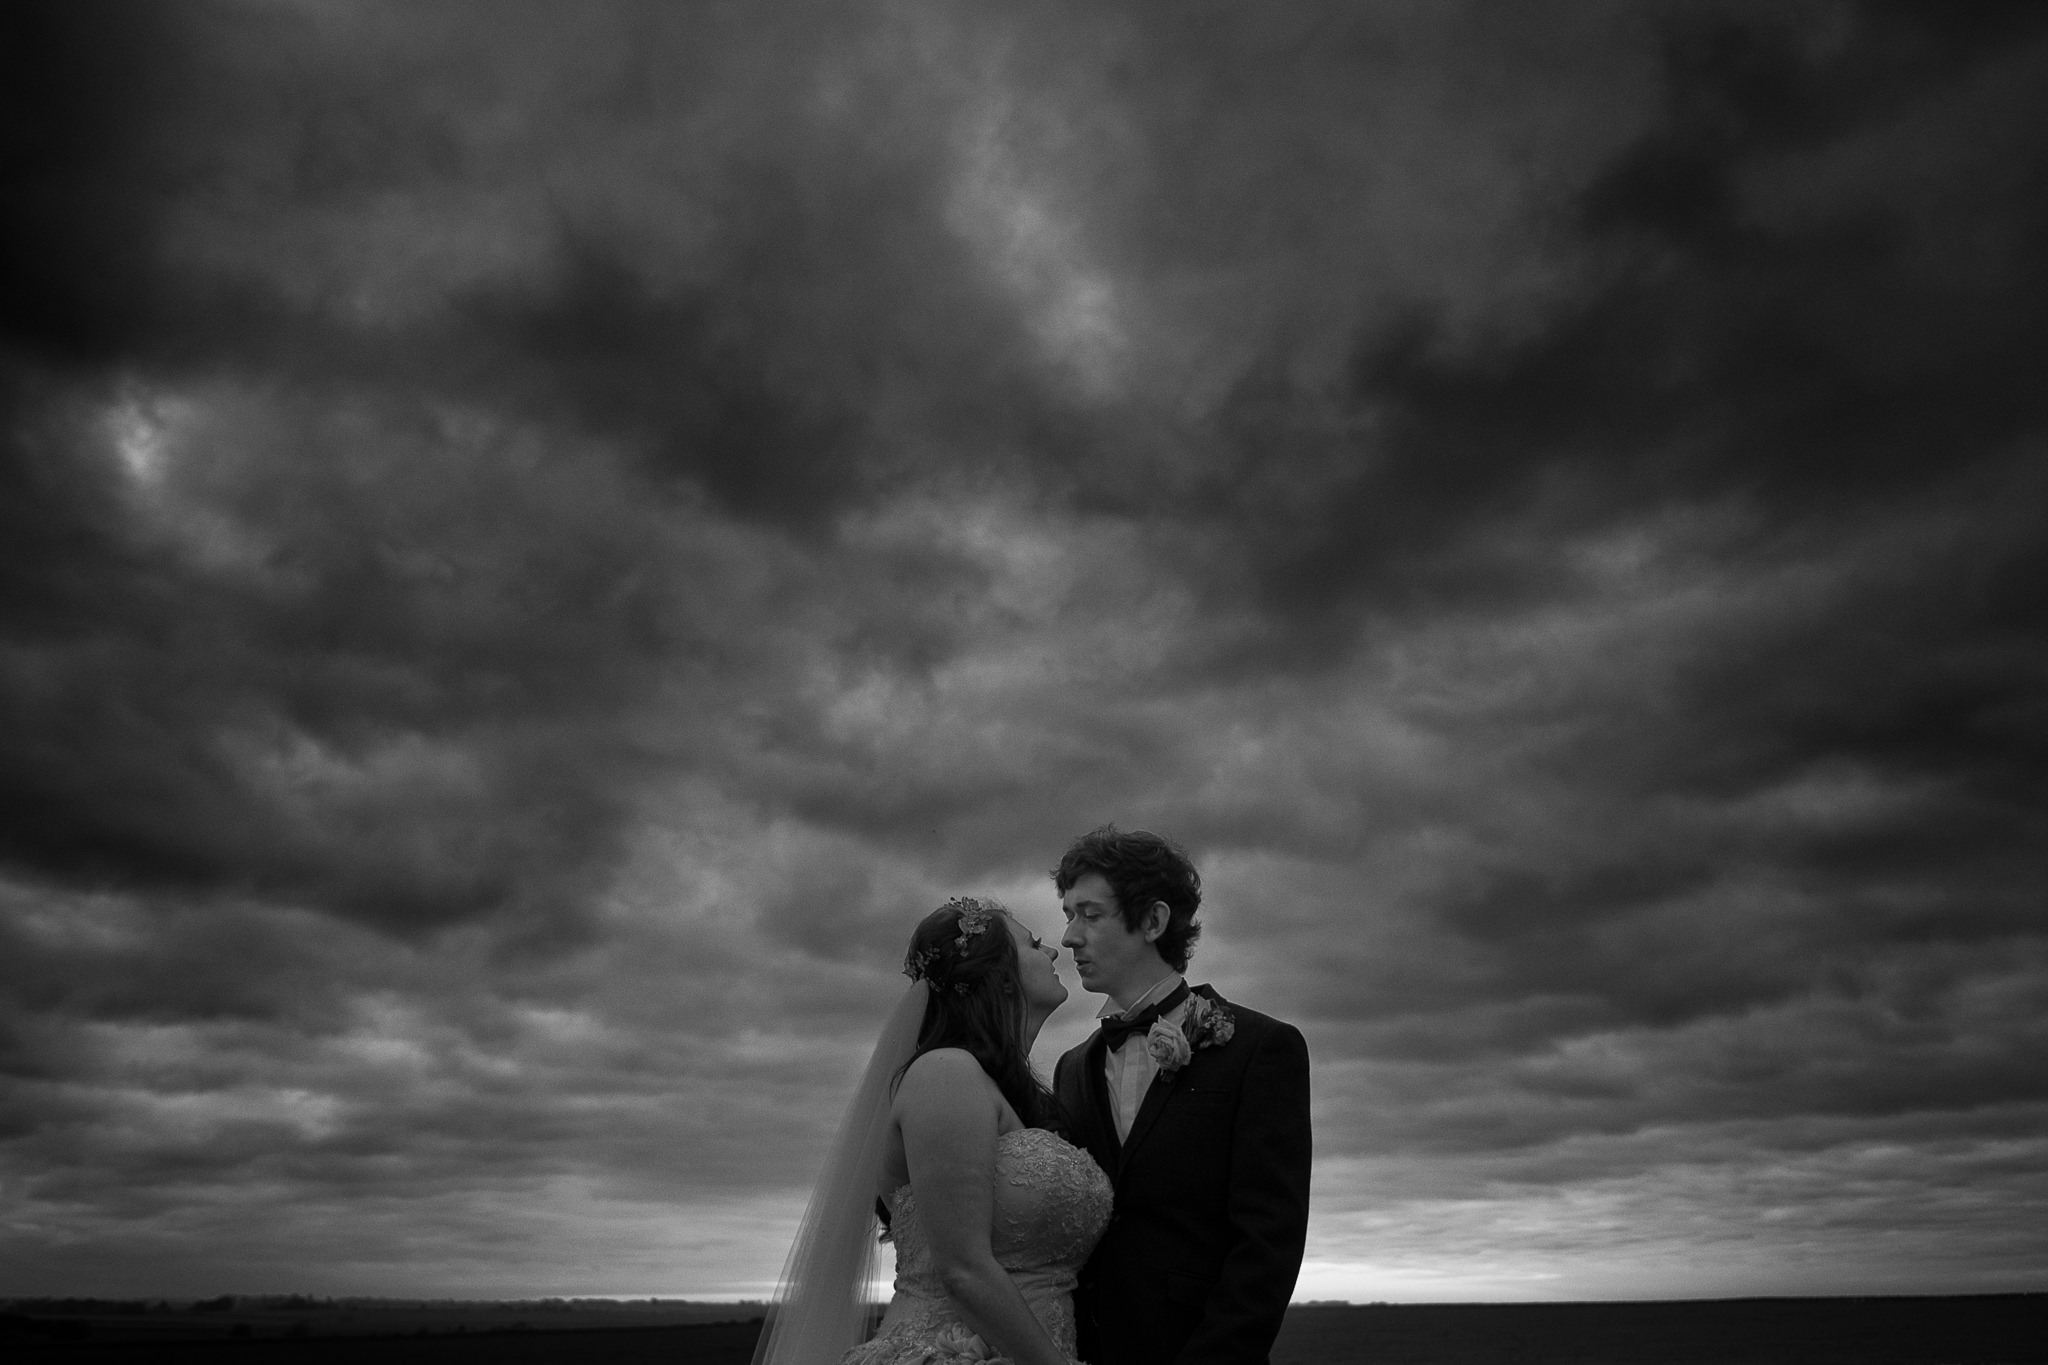 black and white photo of a bride and groom underneath a cloudy dramatic sky